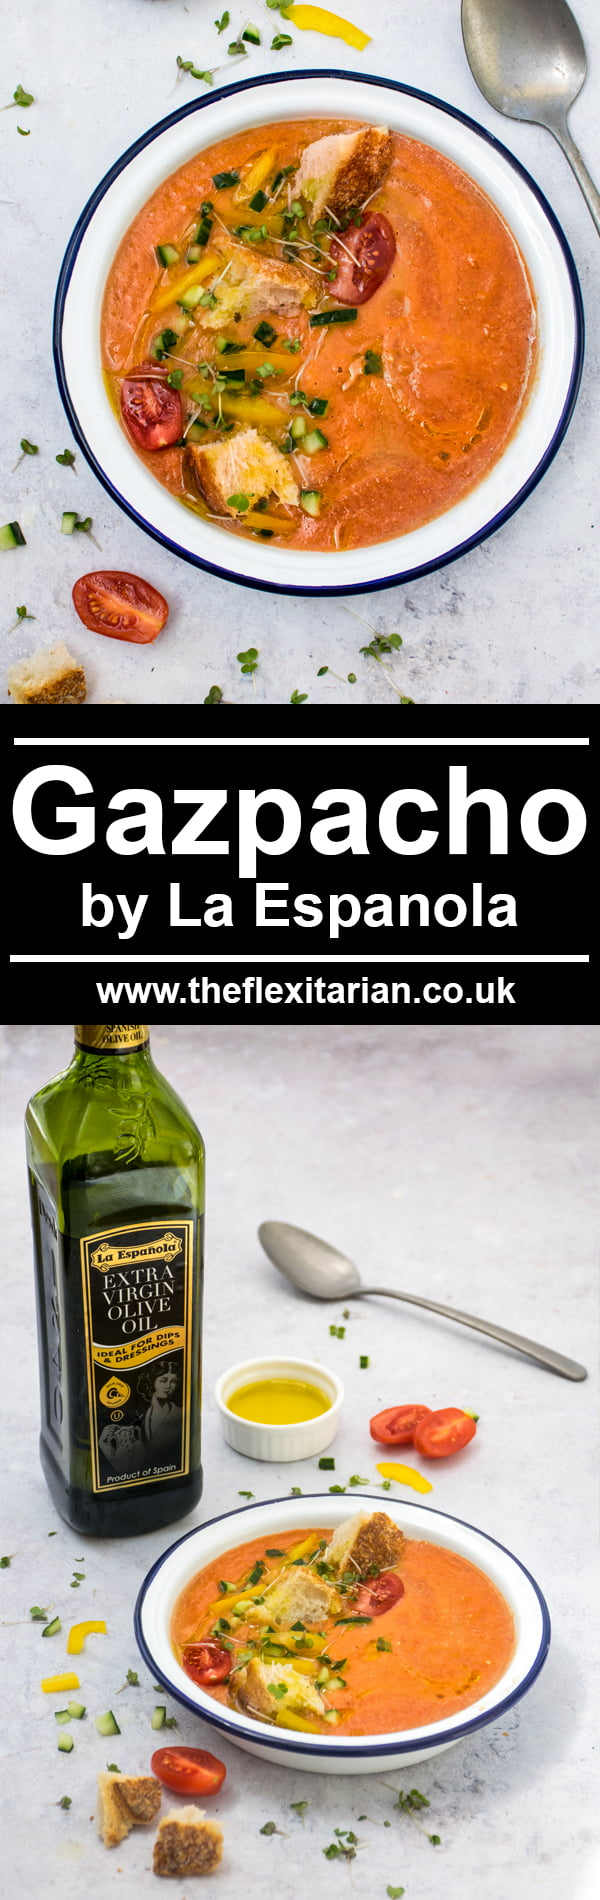 Easy Gazpacho by La Espanola Picture © Annabelle Randles | The Flexi